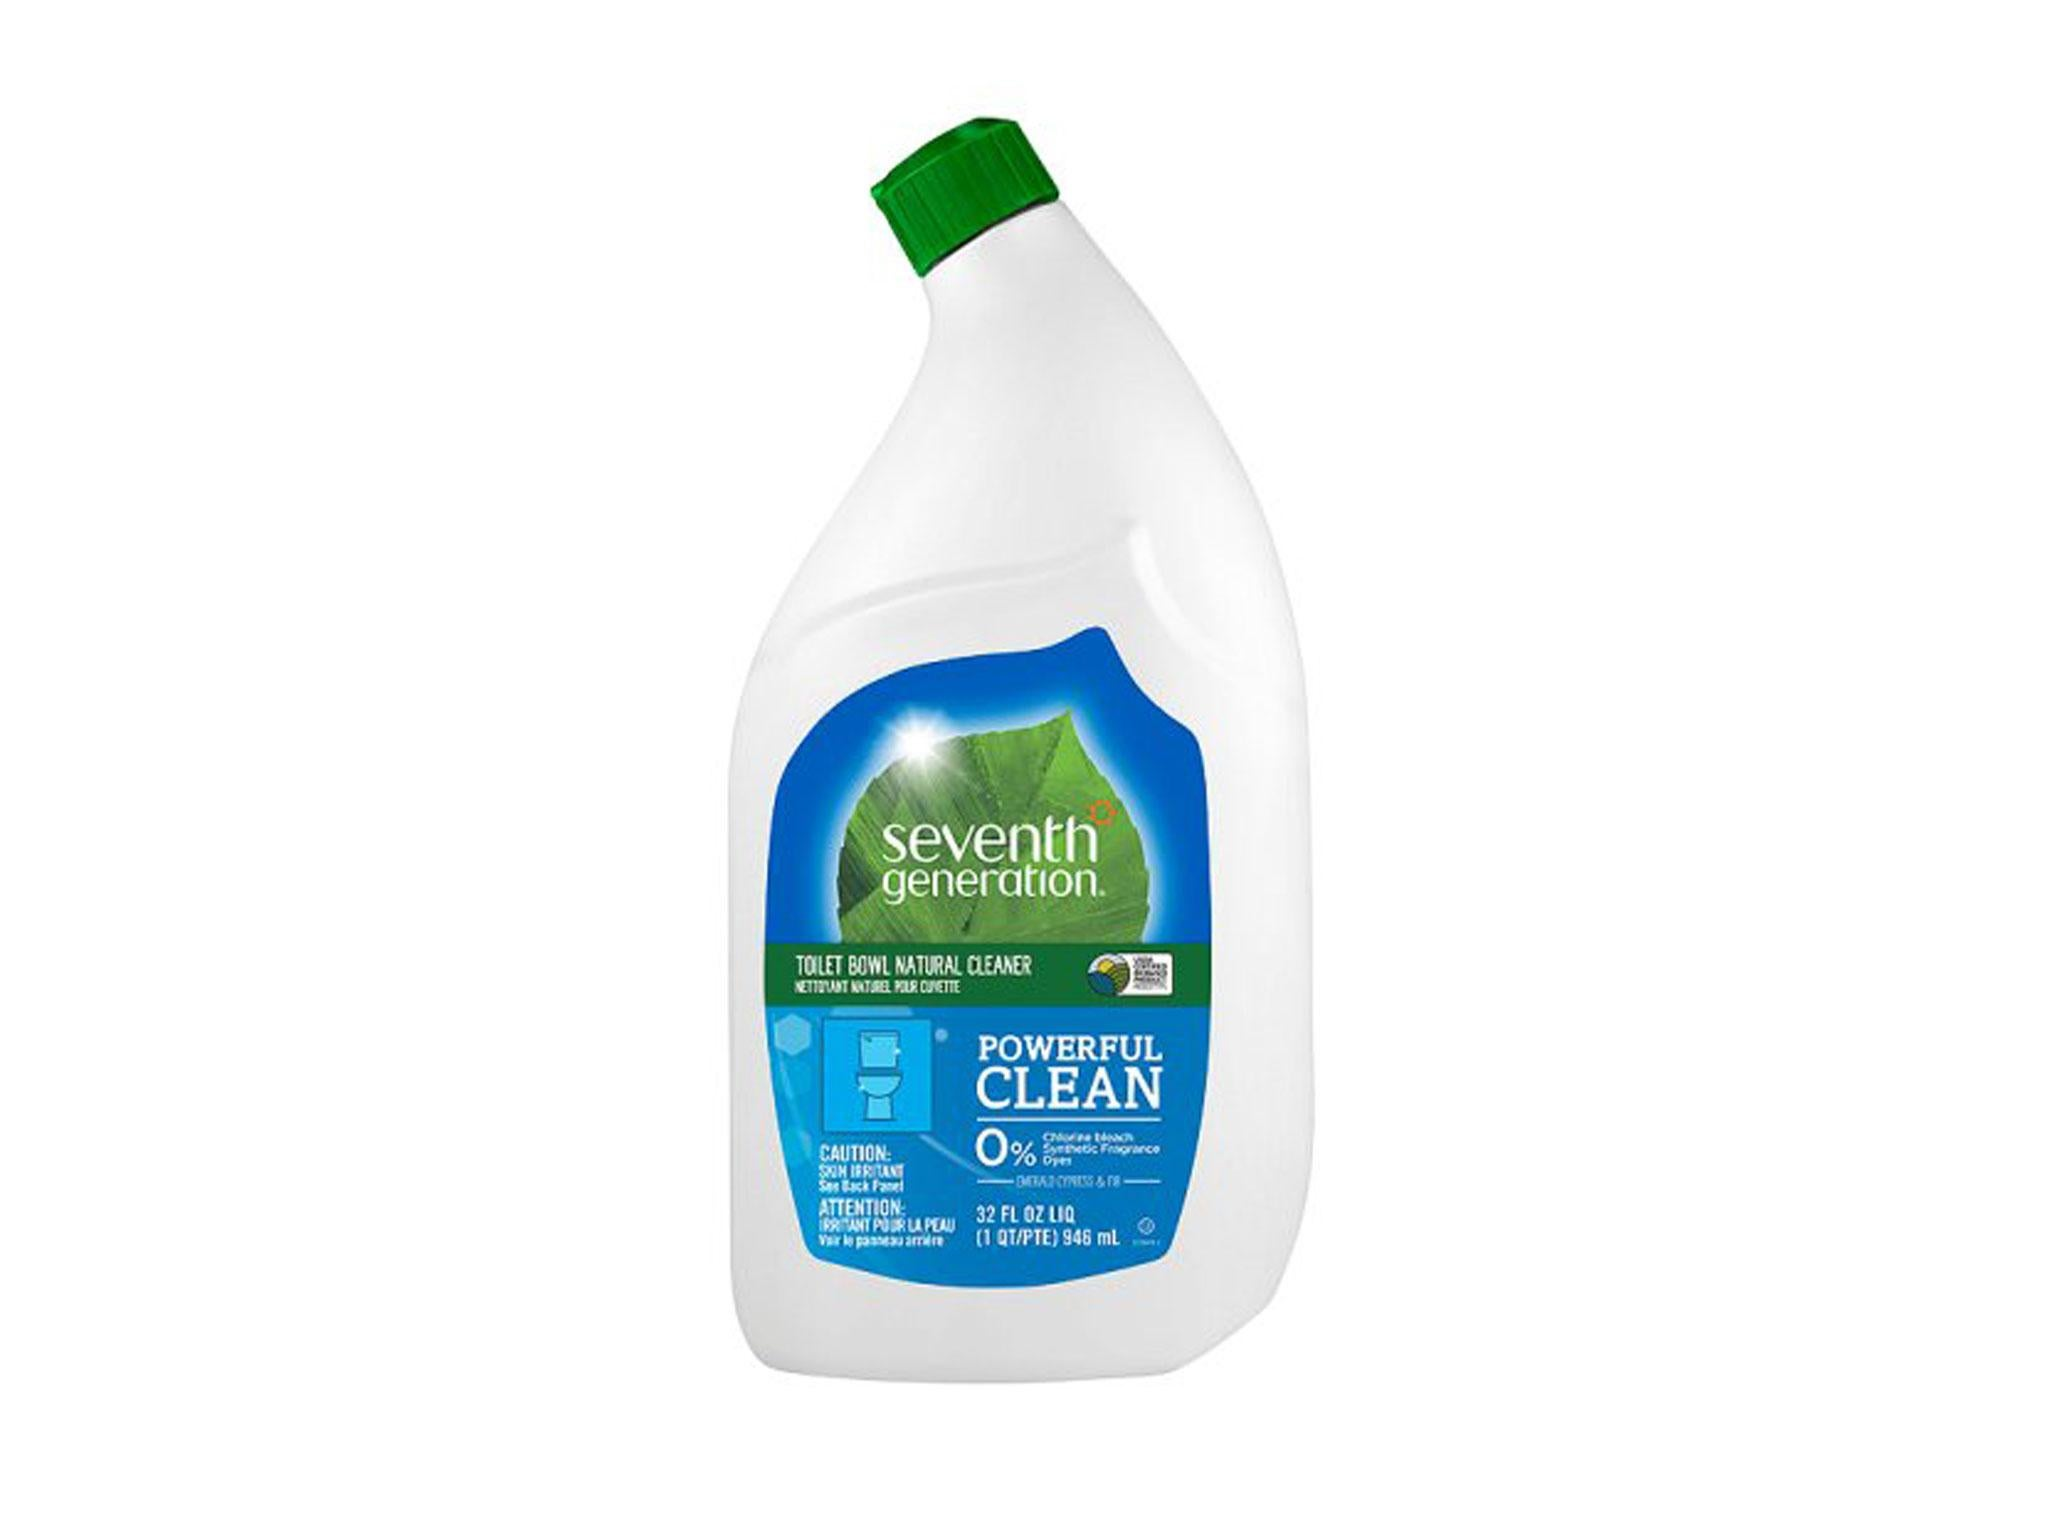 best bathroom cleaner uk kitchen and living space interior u2022 rh caffeinatedprojects co uk best bathroom cleaner reviews uk best bathroom floor cleaner uk